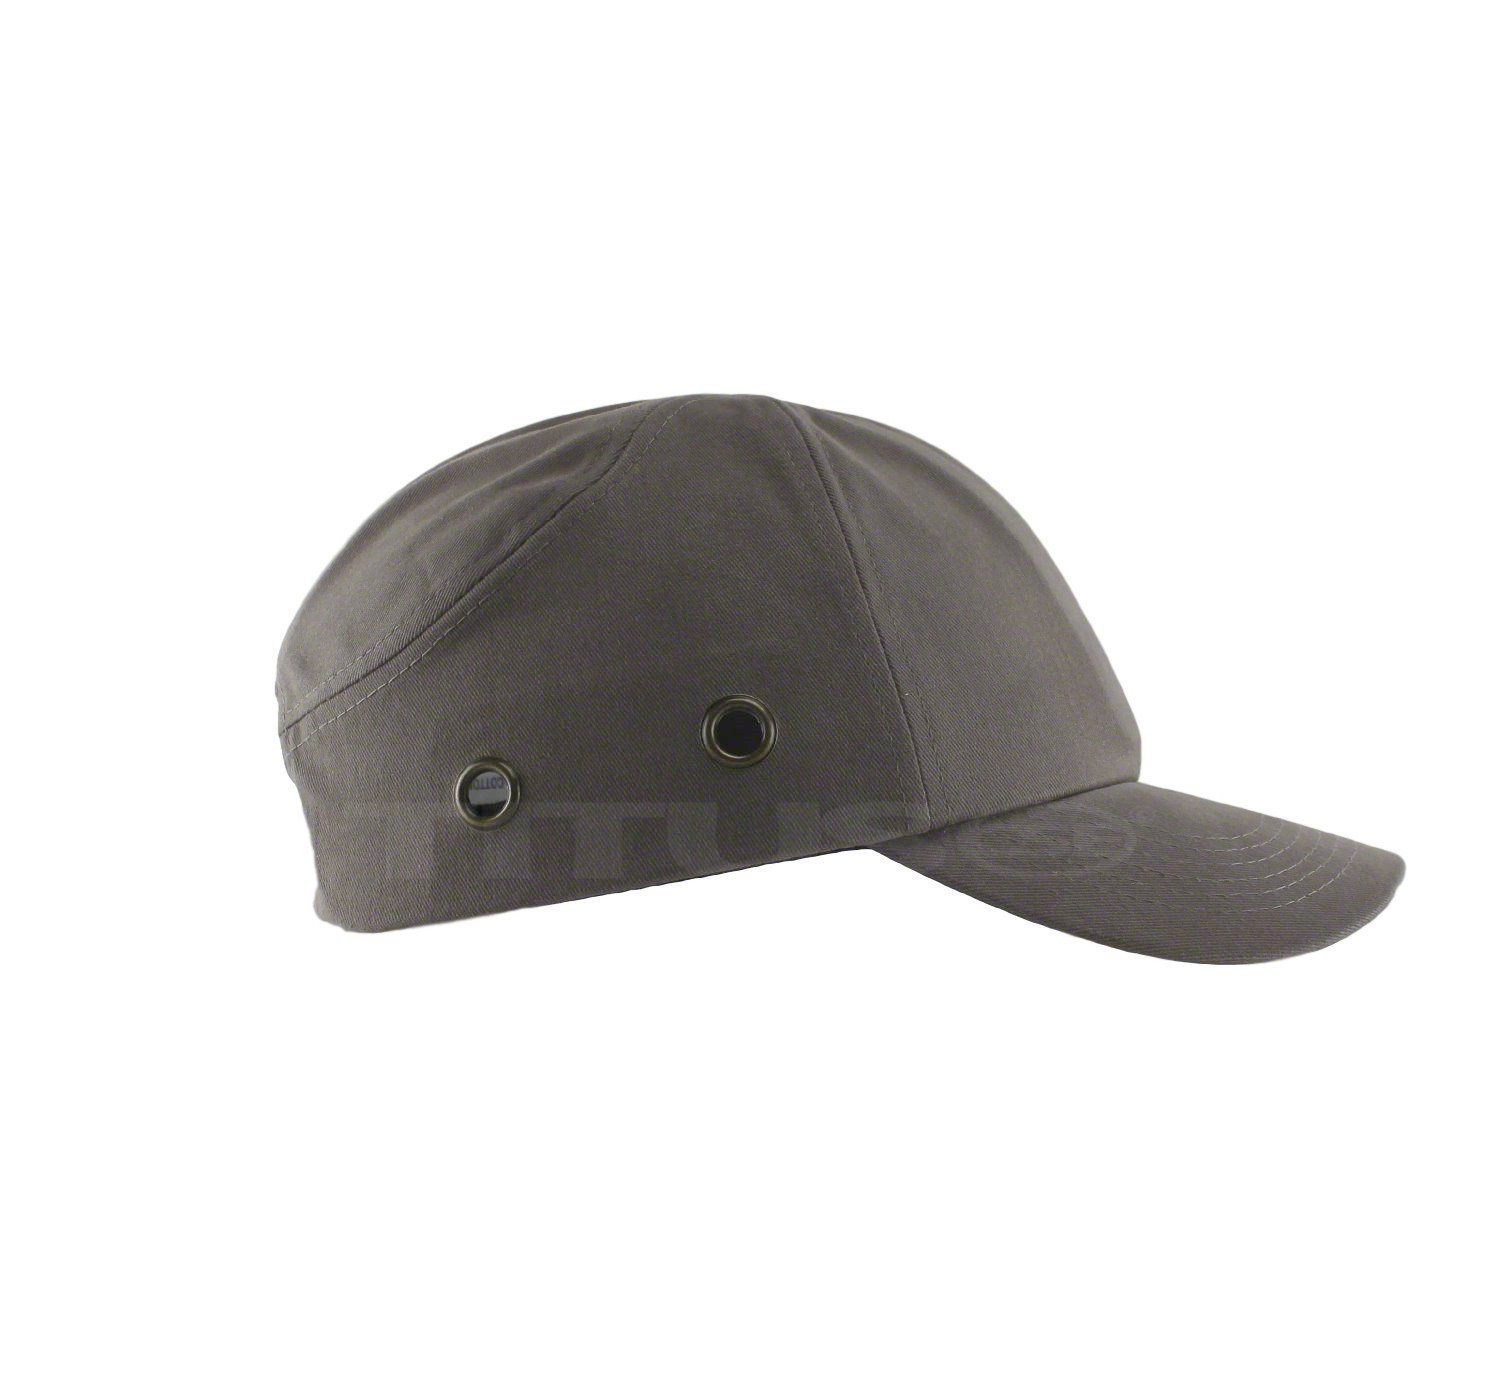 Titus Lightweight Safety Bump Cap - Baseball Style Protective Hat (Grey) by Titus (Image #4)